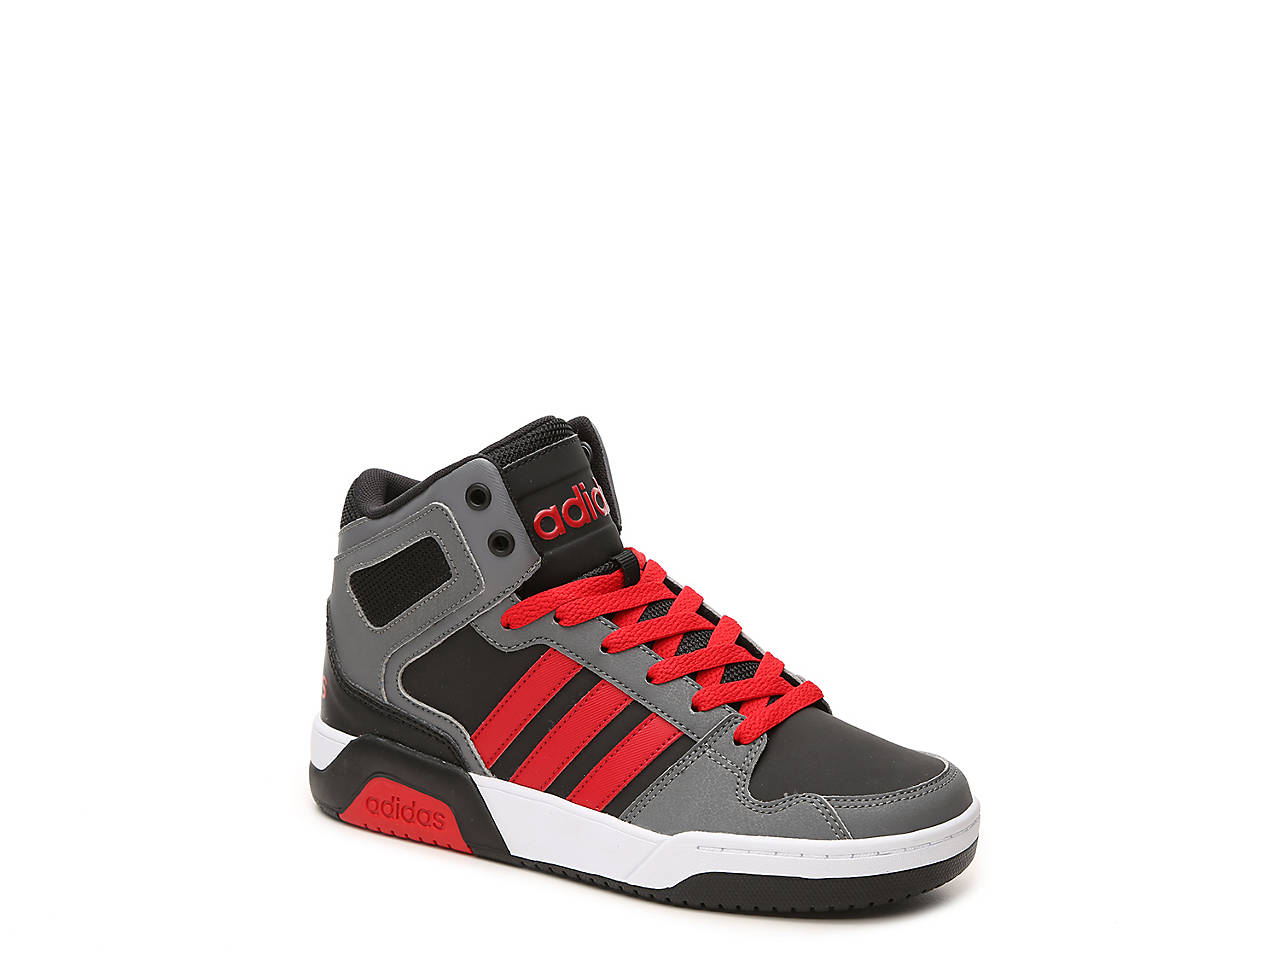 Adidas Bb9tis Toddler Youth Basketball Shoe Kids Shoes Dsw